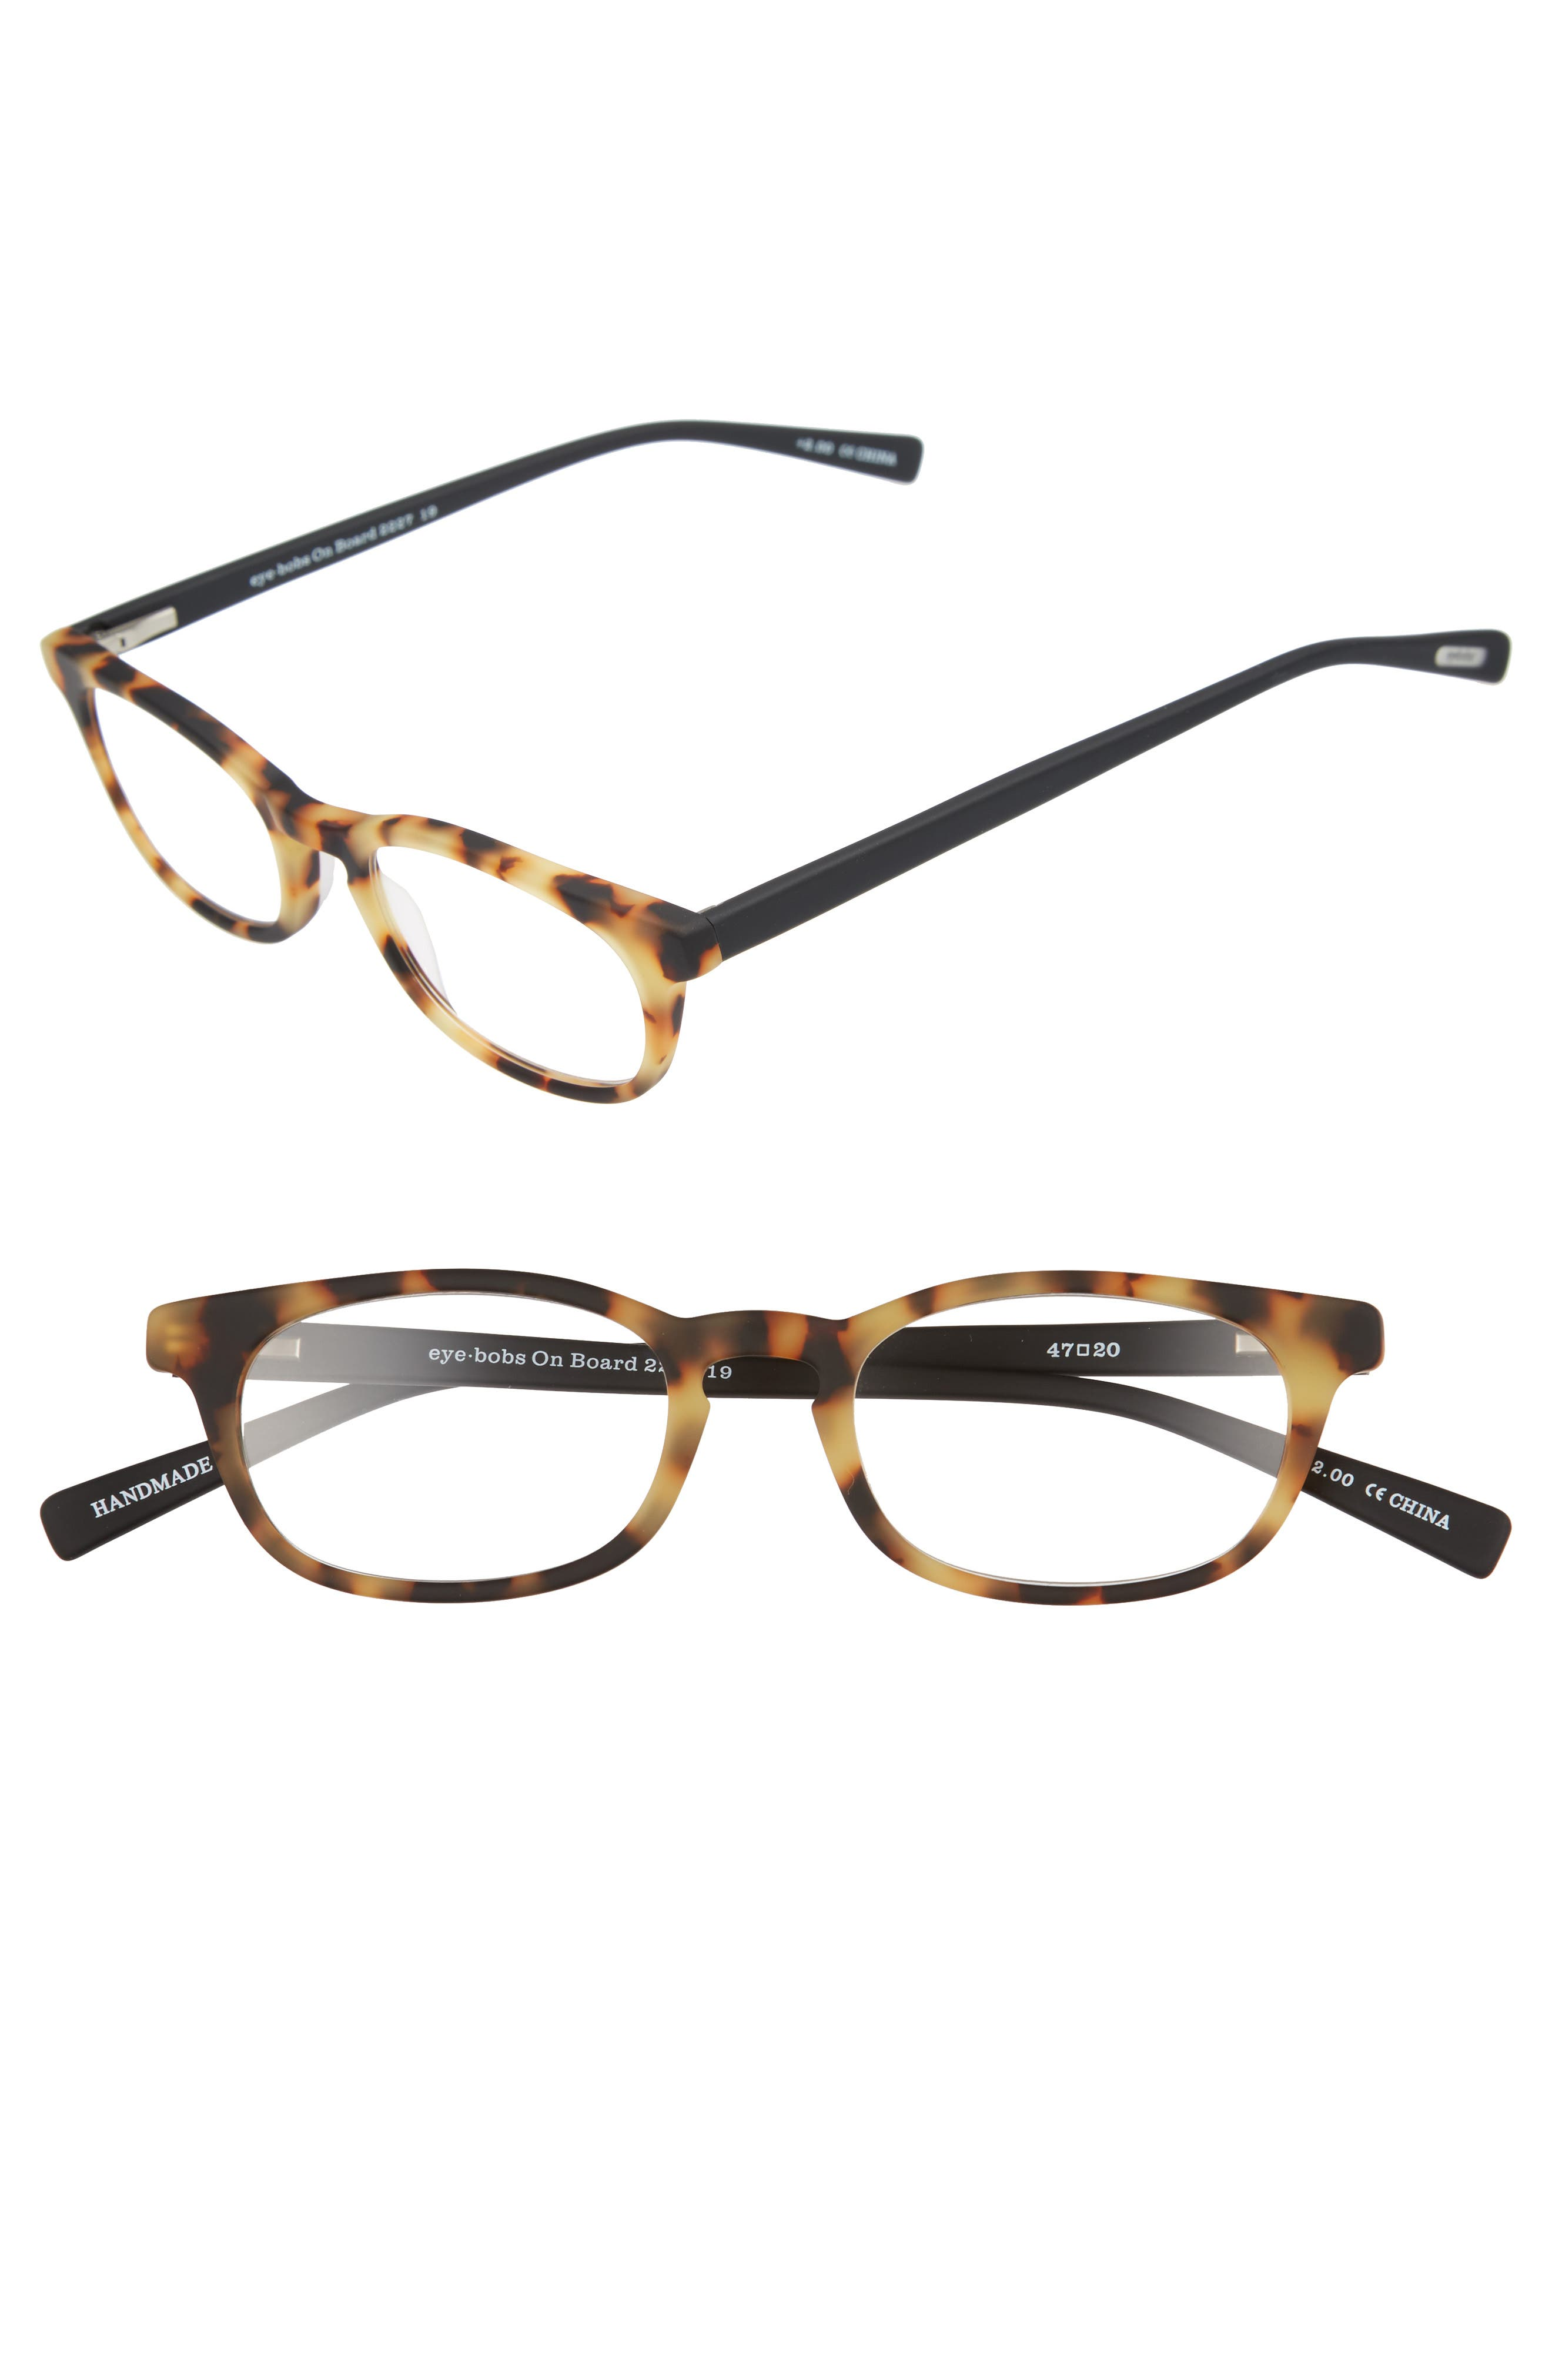 On Board 47mm Reading Glasses,                             Main thumbnail 1, color,                             211